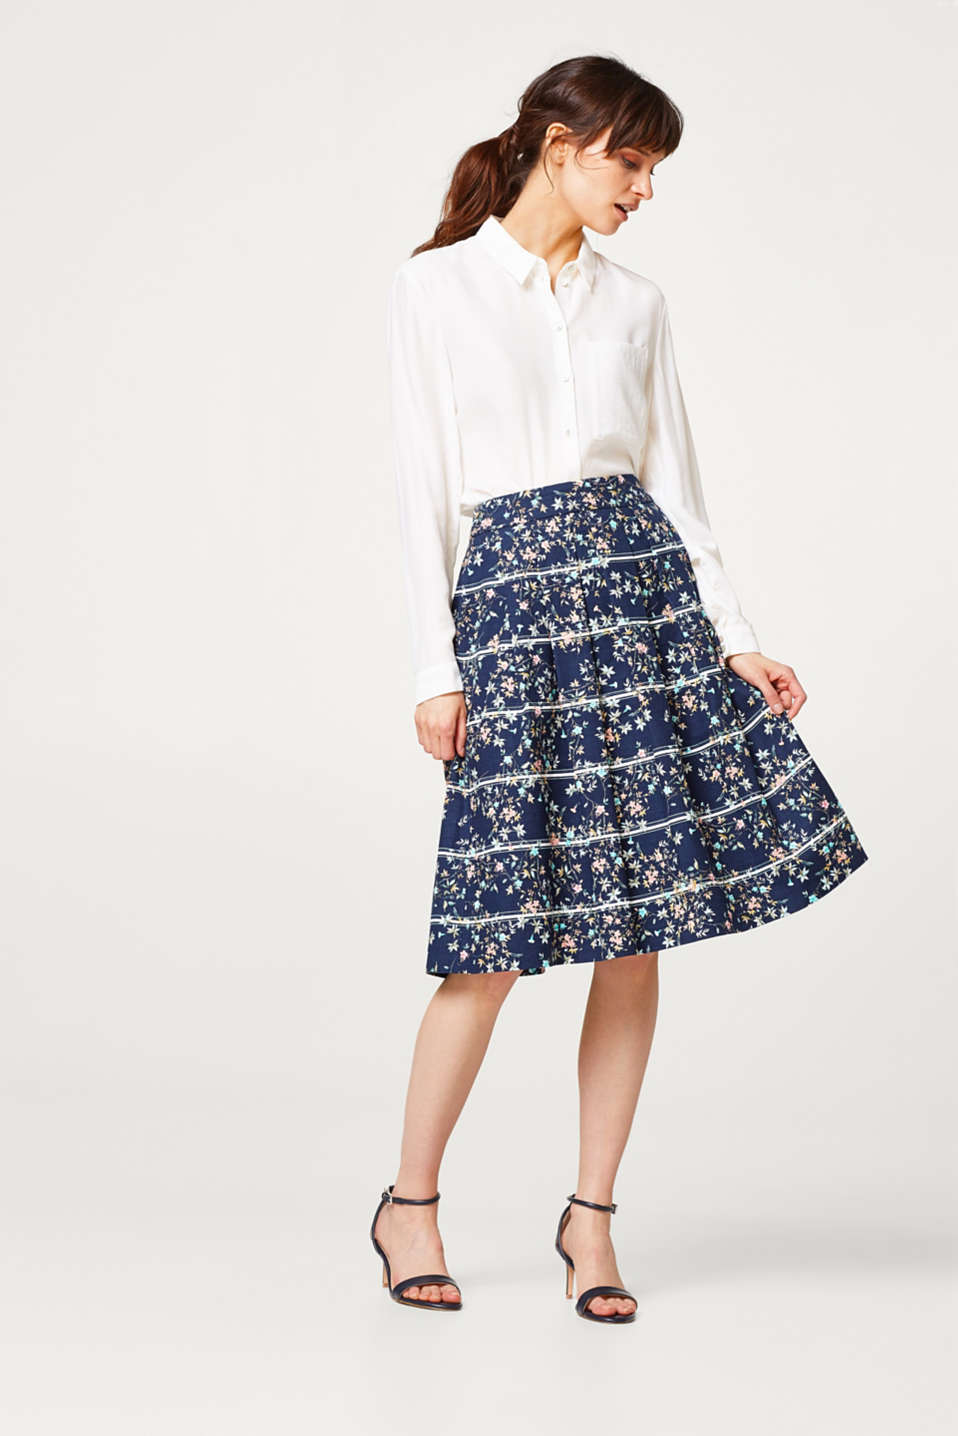 Textured stretch cotton pleated skirt